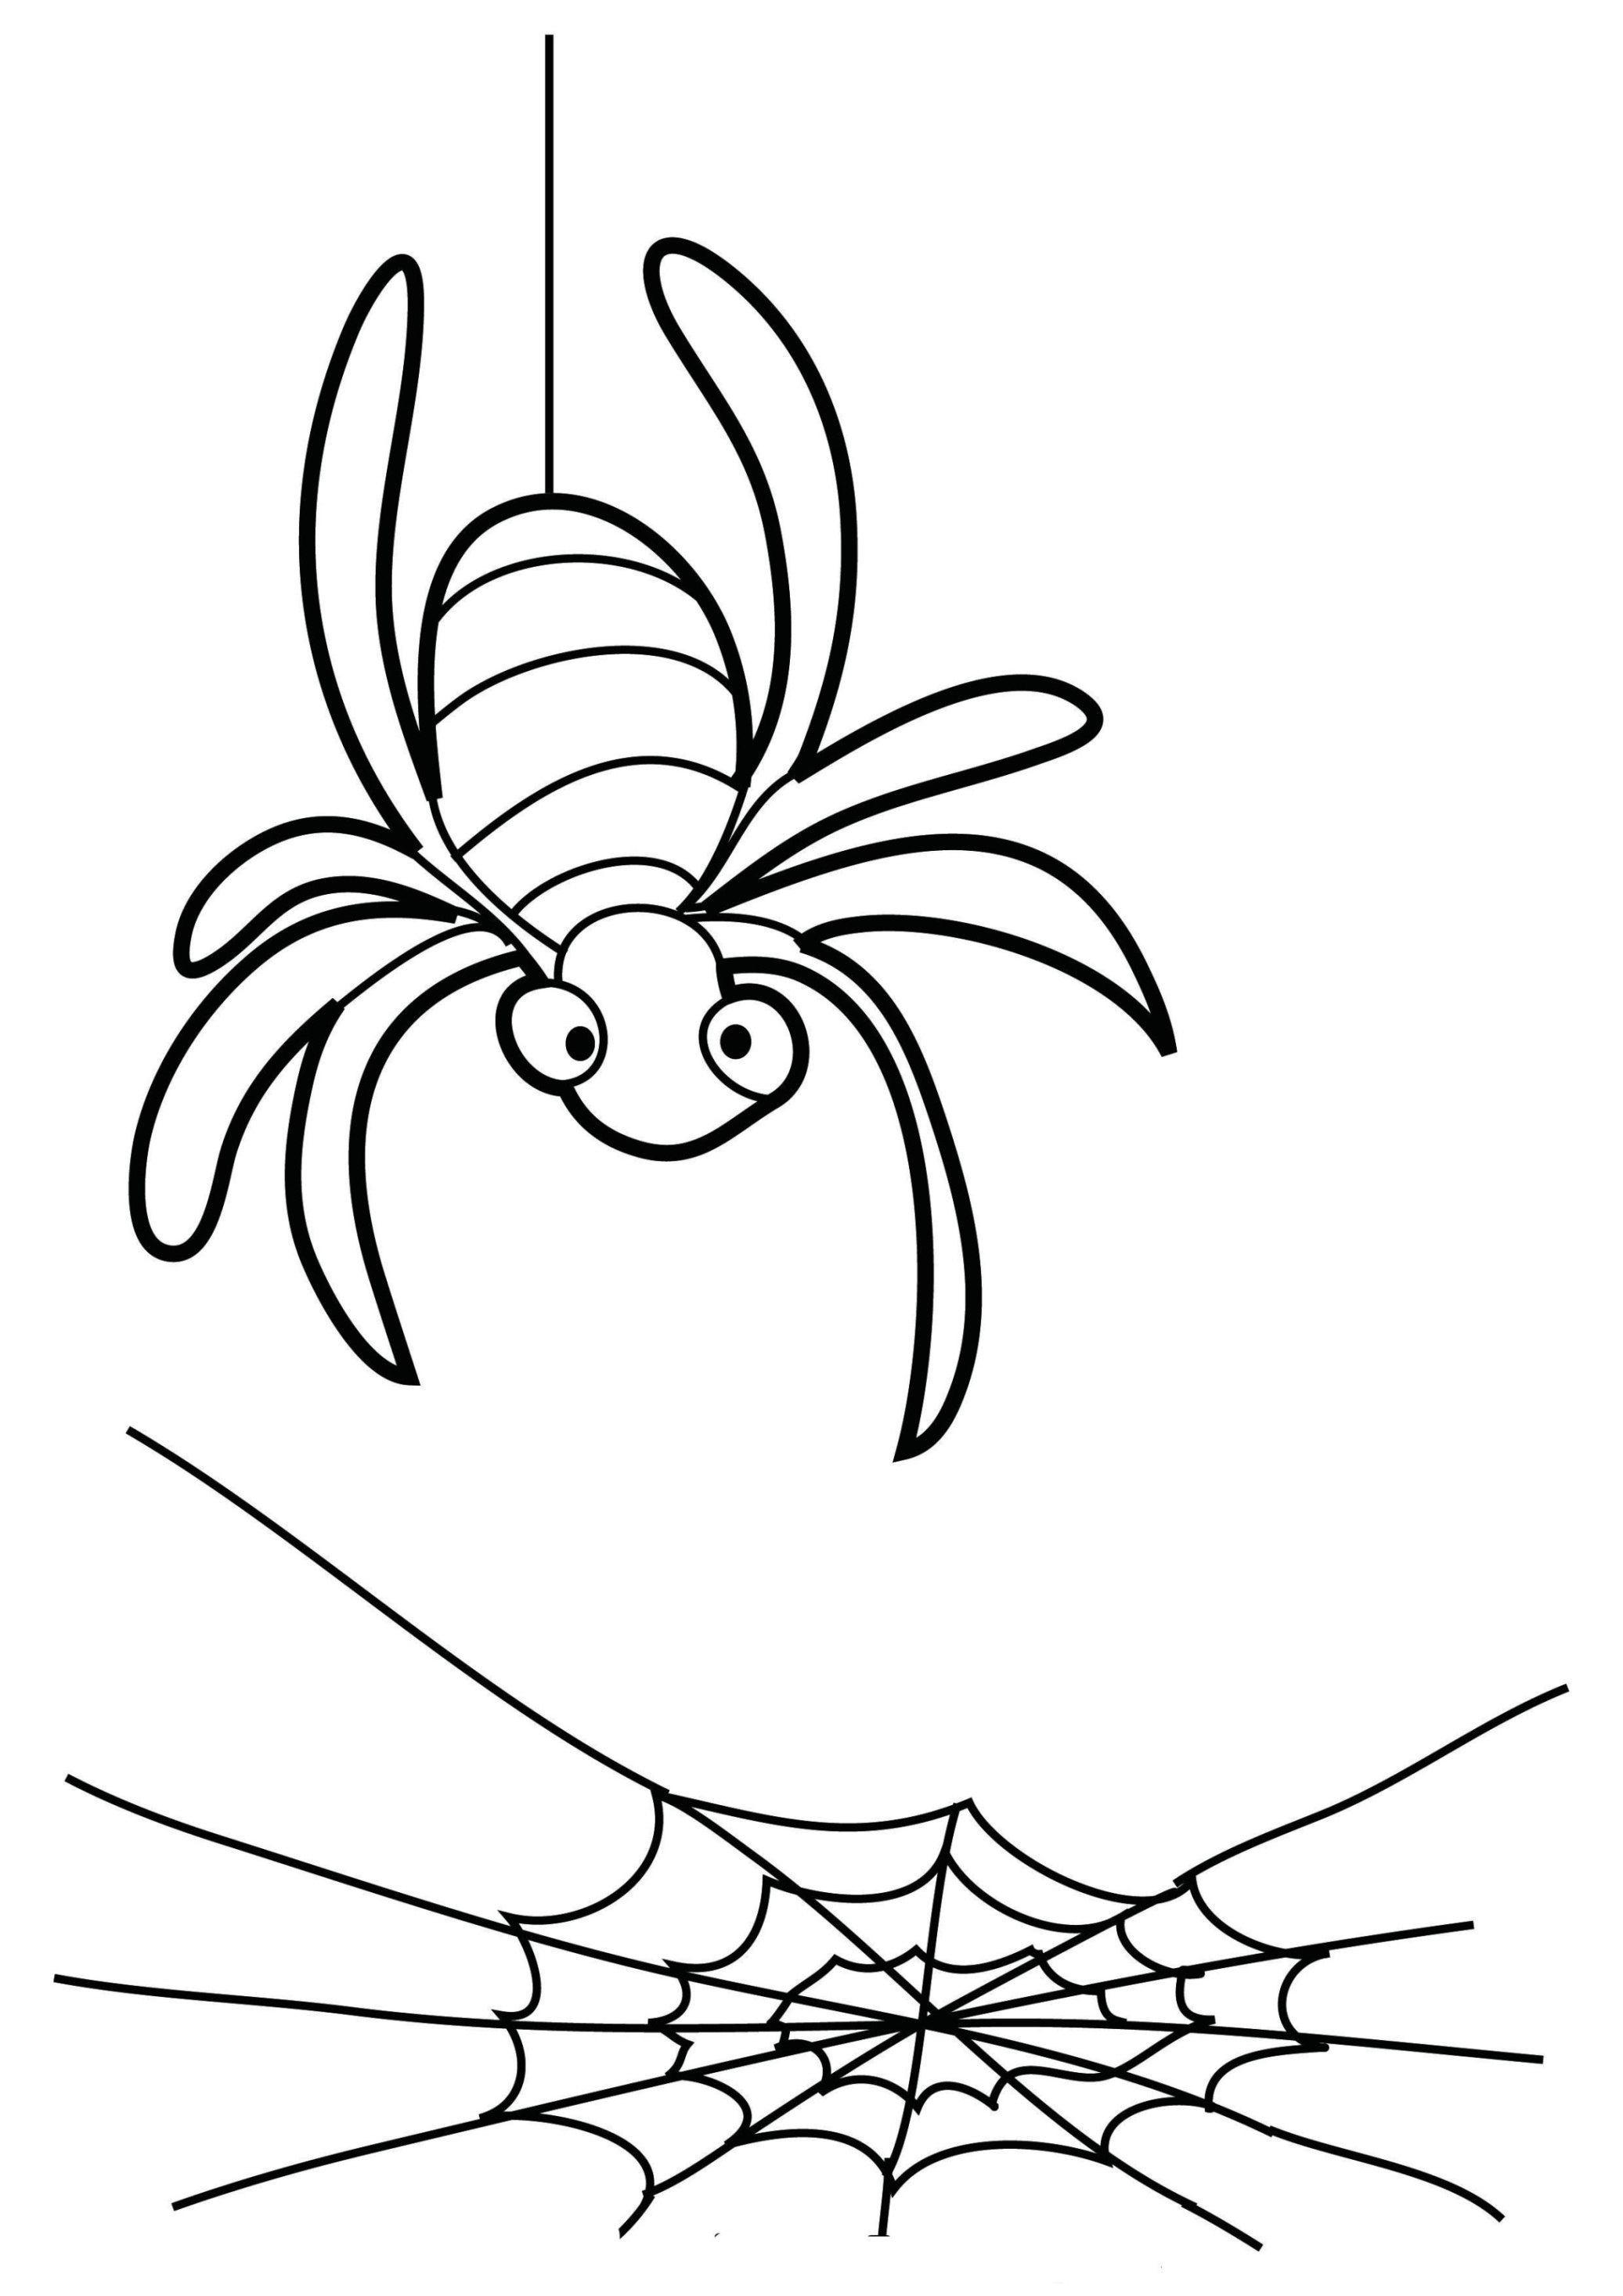 Mascaras Para Colorear likewise Spider Arthropod Animal Silhouette 717796 also Art Deco Clip Art Border furthermore File Spiders web together with Frog Eggs. on spider web